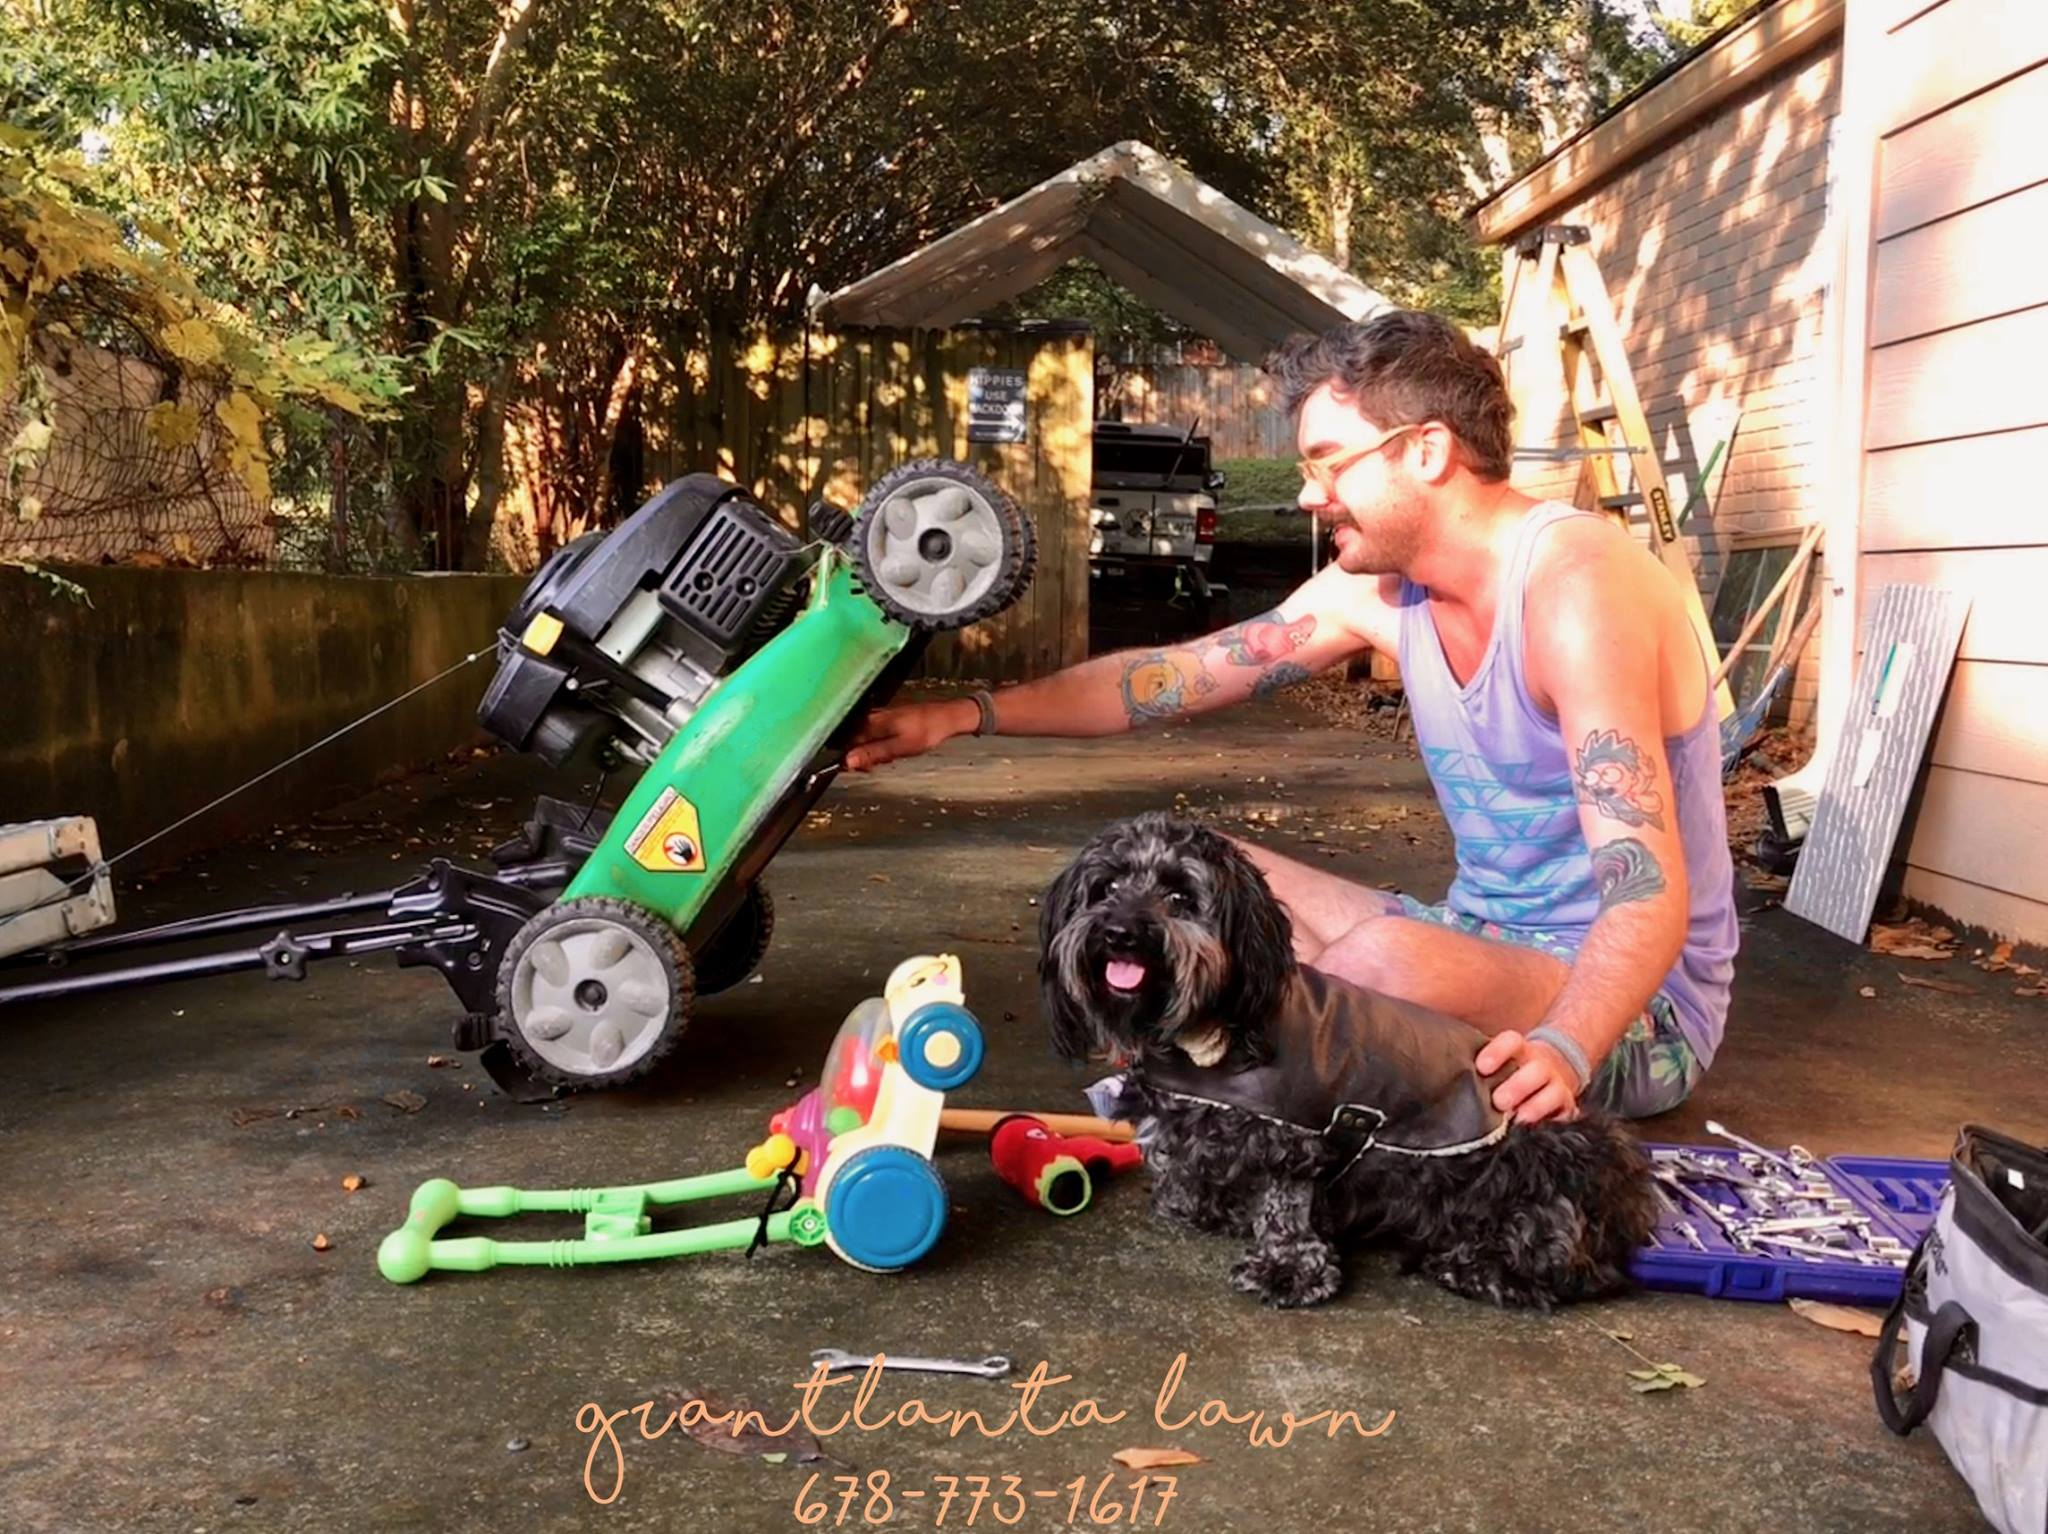 Grant and Sophie Fixing Lawnmowers Grantlanta Lawn Landscaping Services Near Atlanta